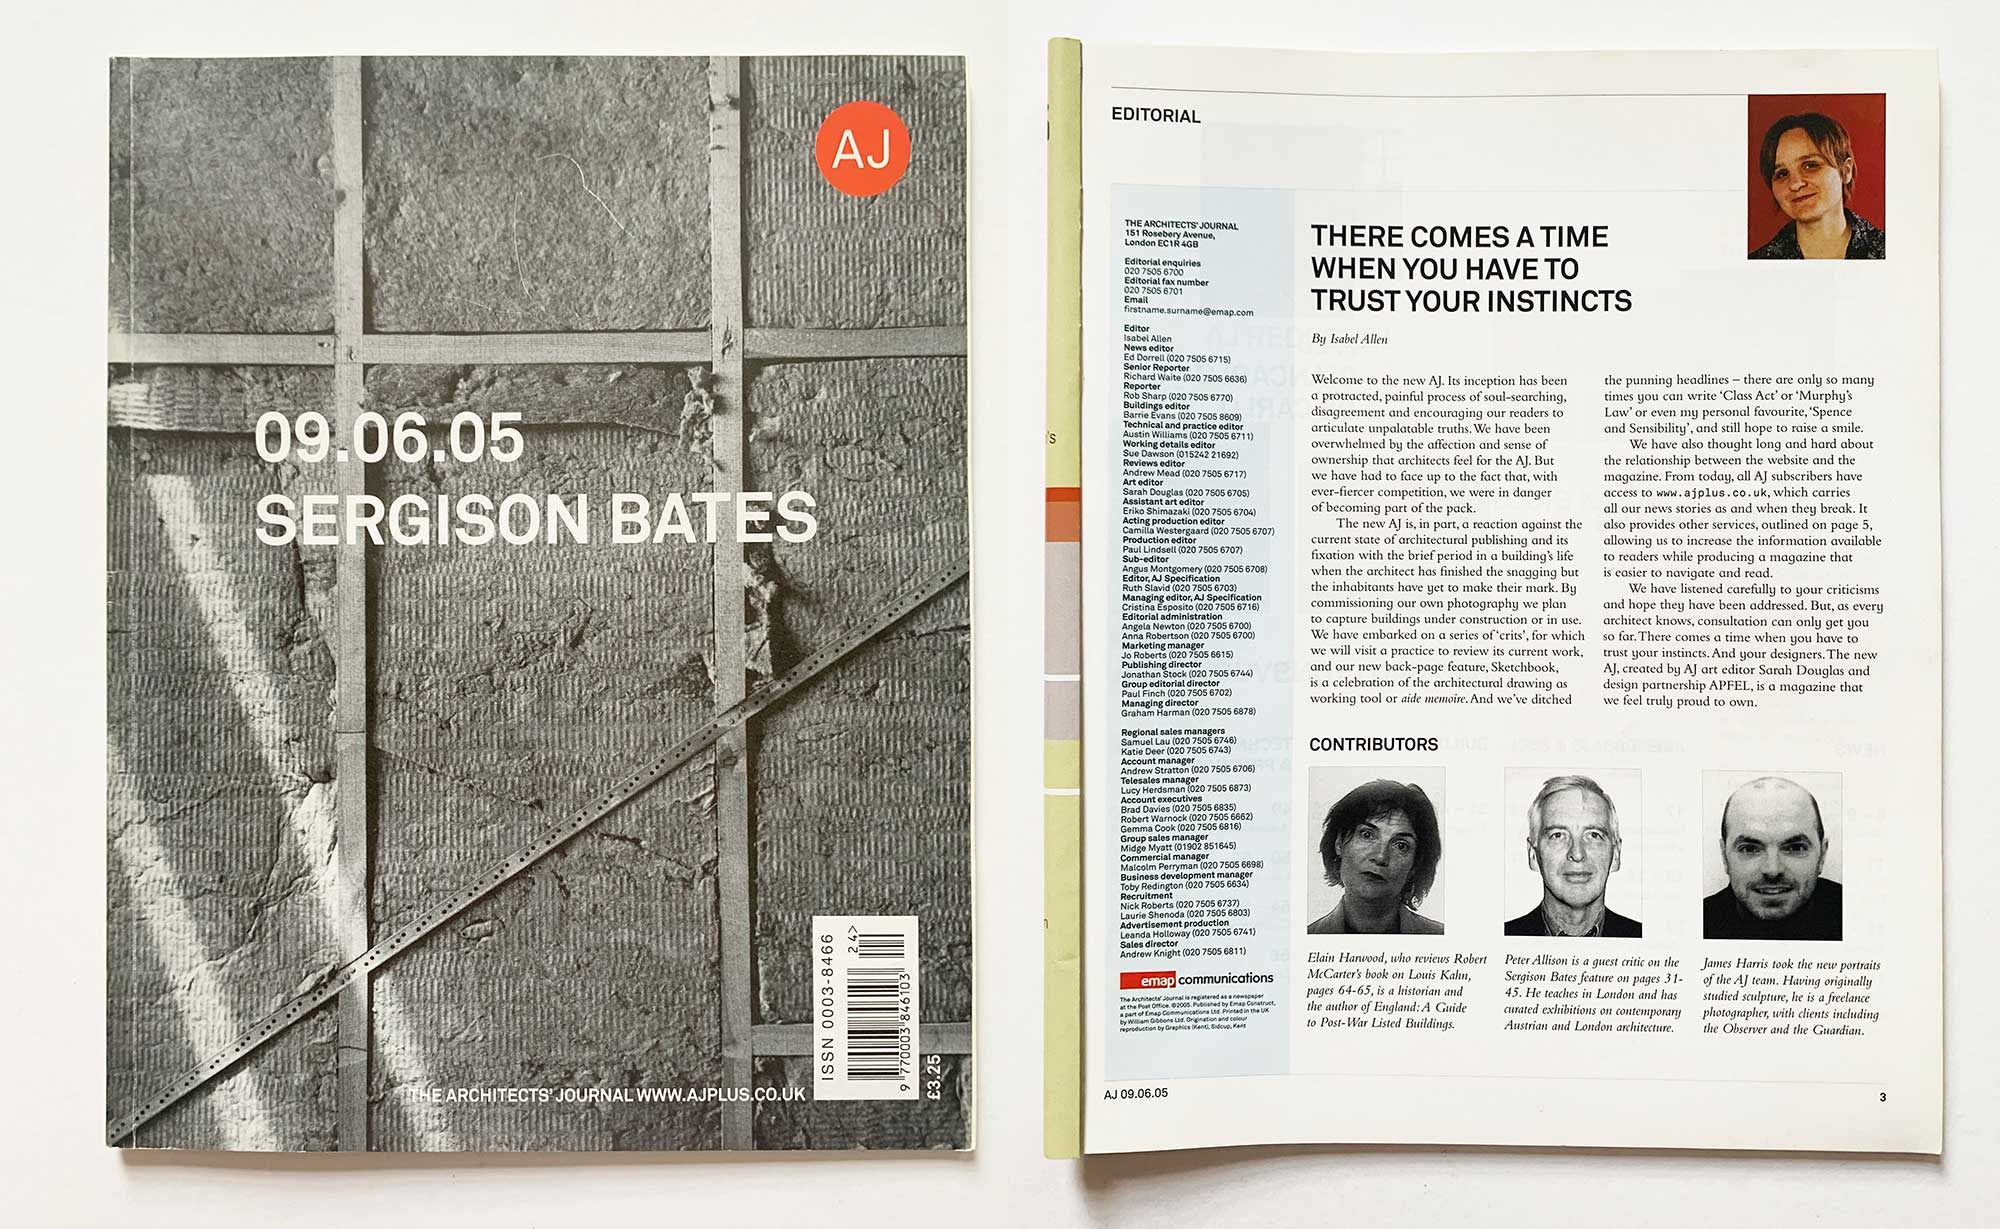 Fig. 6a. The relaunch issue of The Architects' Journal, edited by Isabel Allen, redesigned by Sarah Douglas and Apfel.